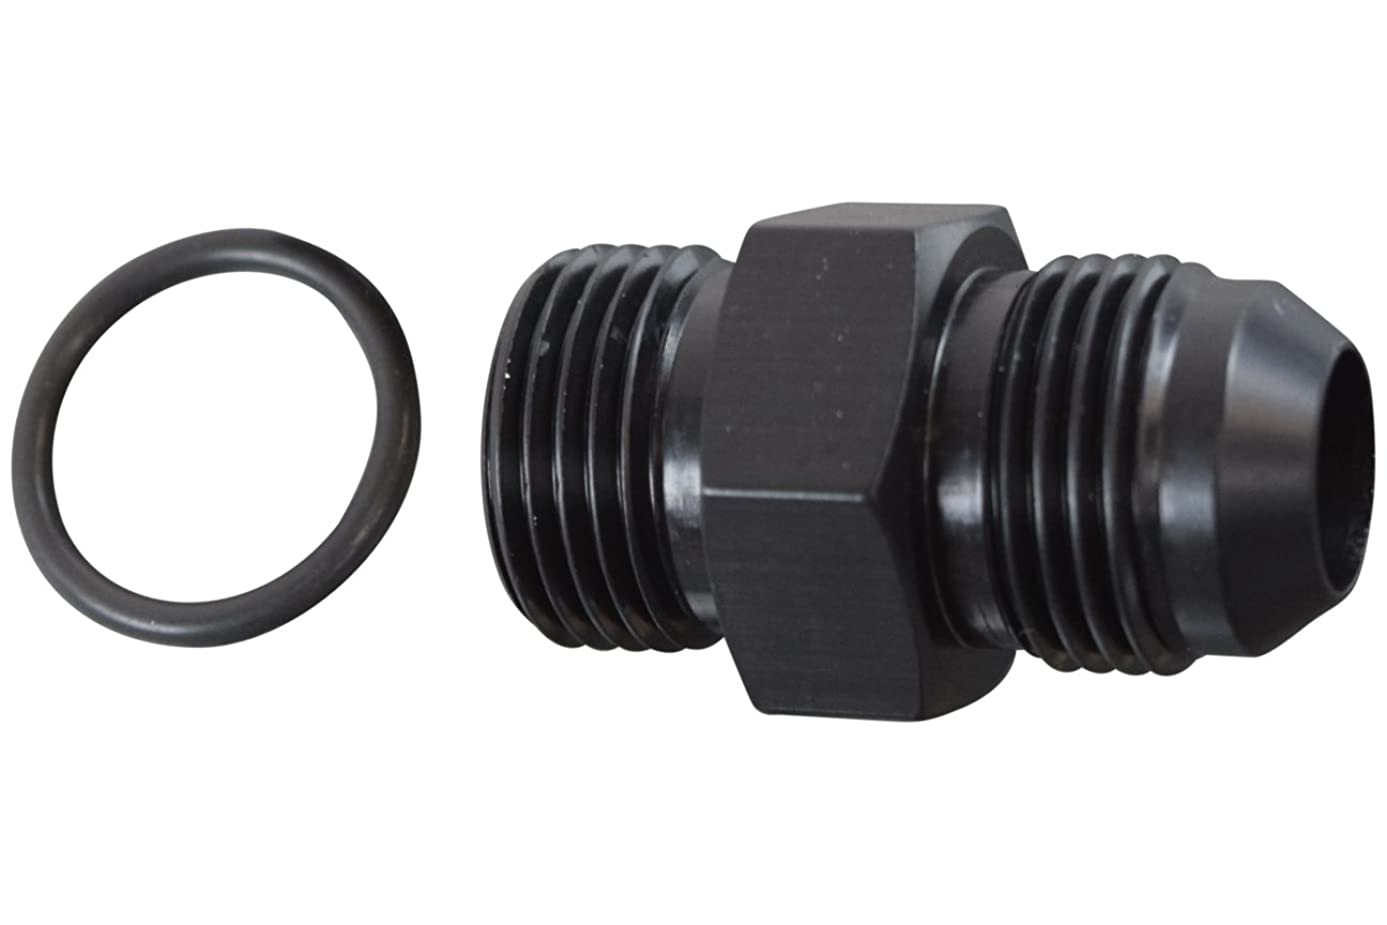 -10AN Flare to 10 Oring ORB Male Fuel Pump Rail Adapter Fitting Black F10AN100R